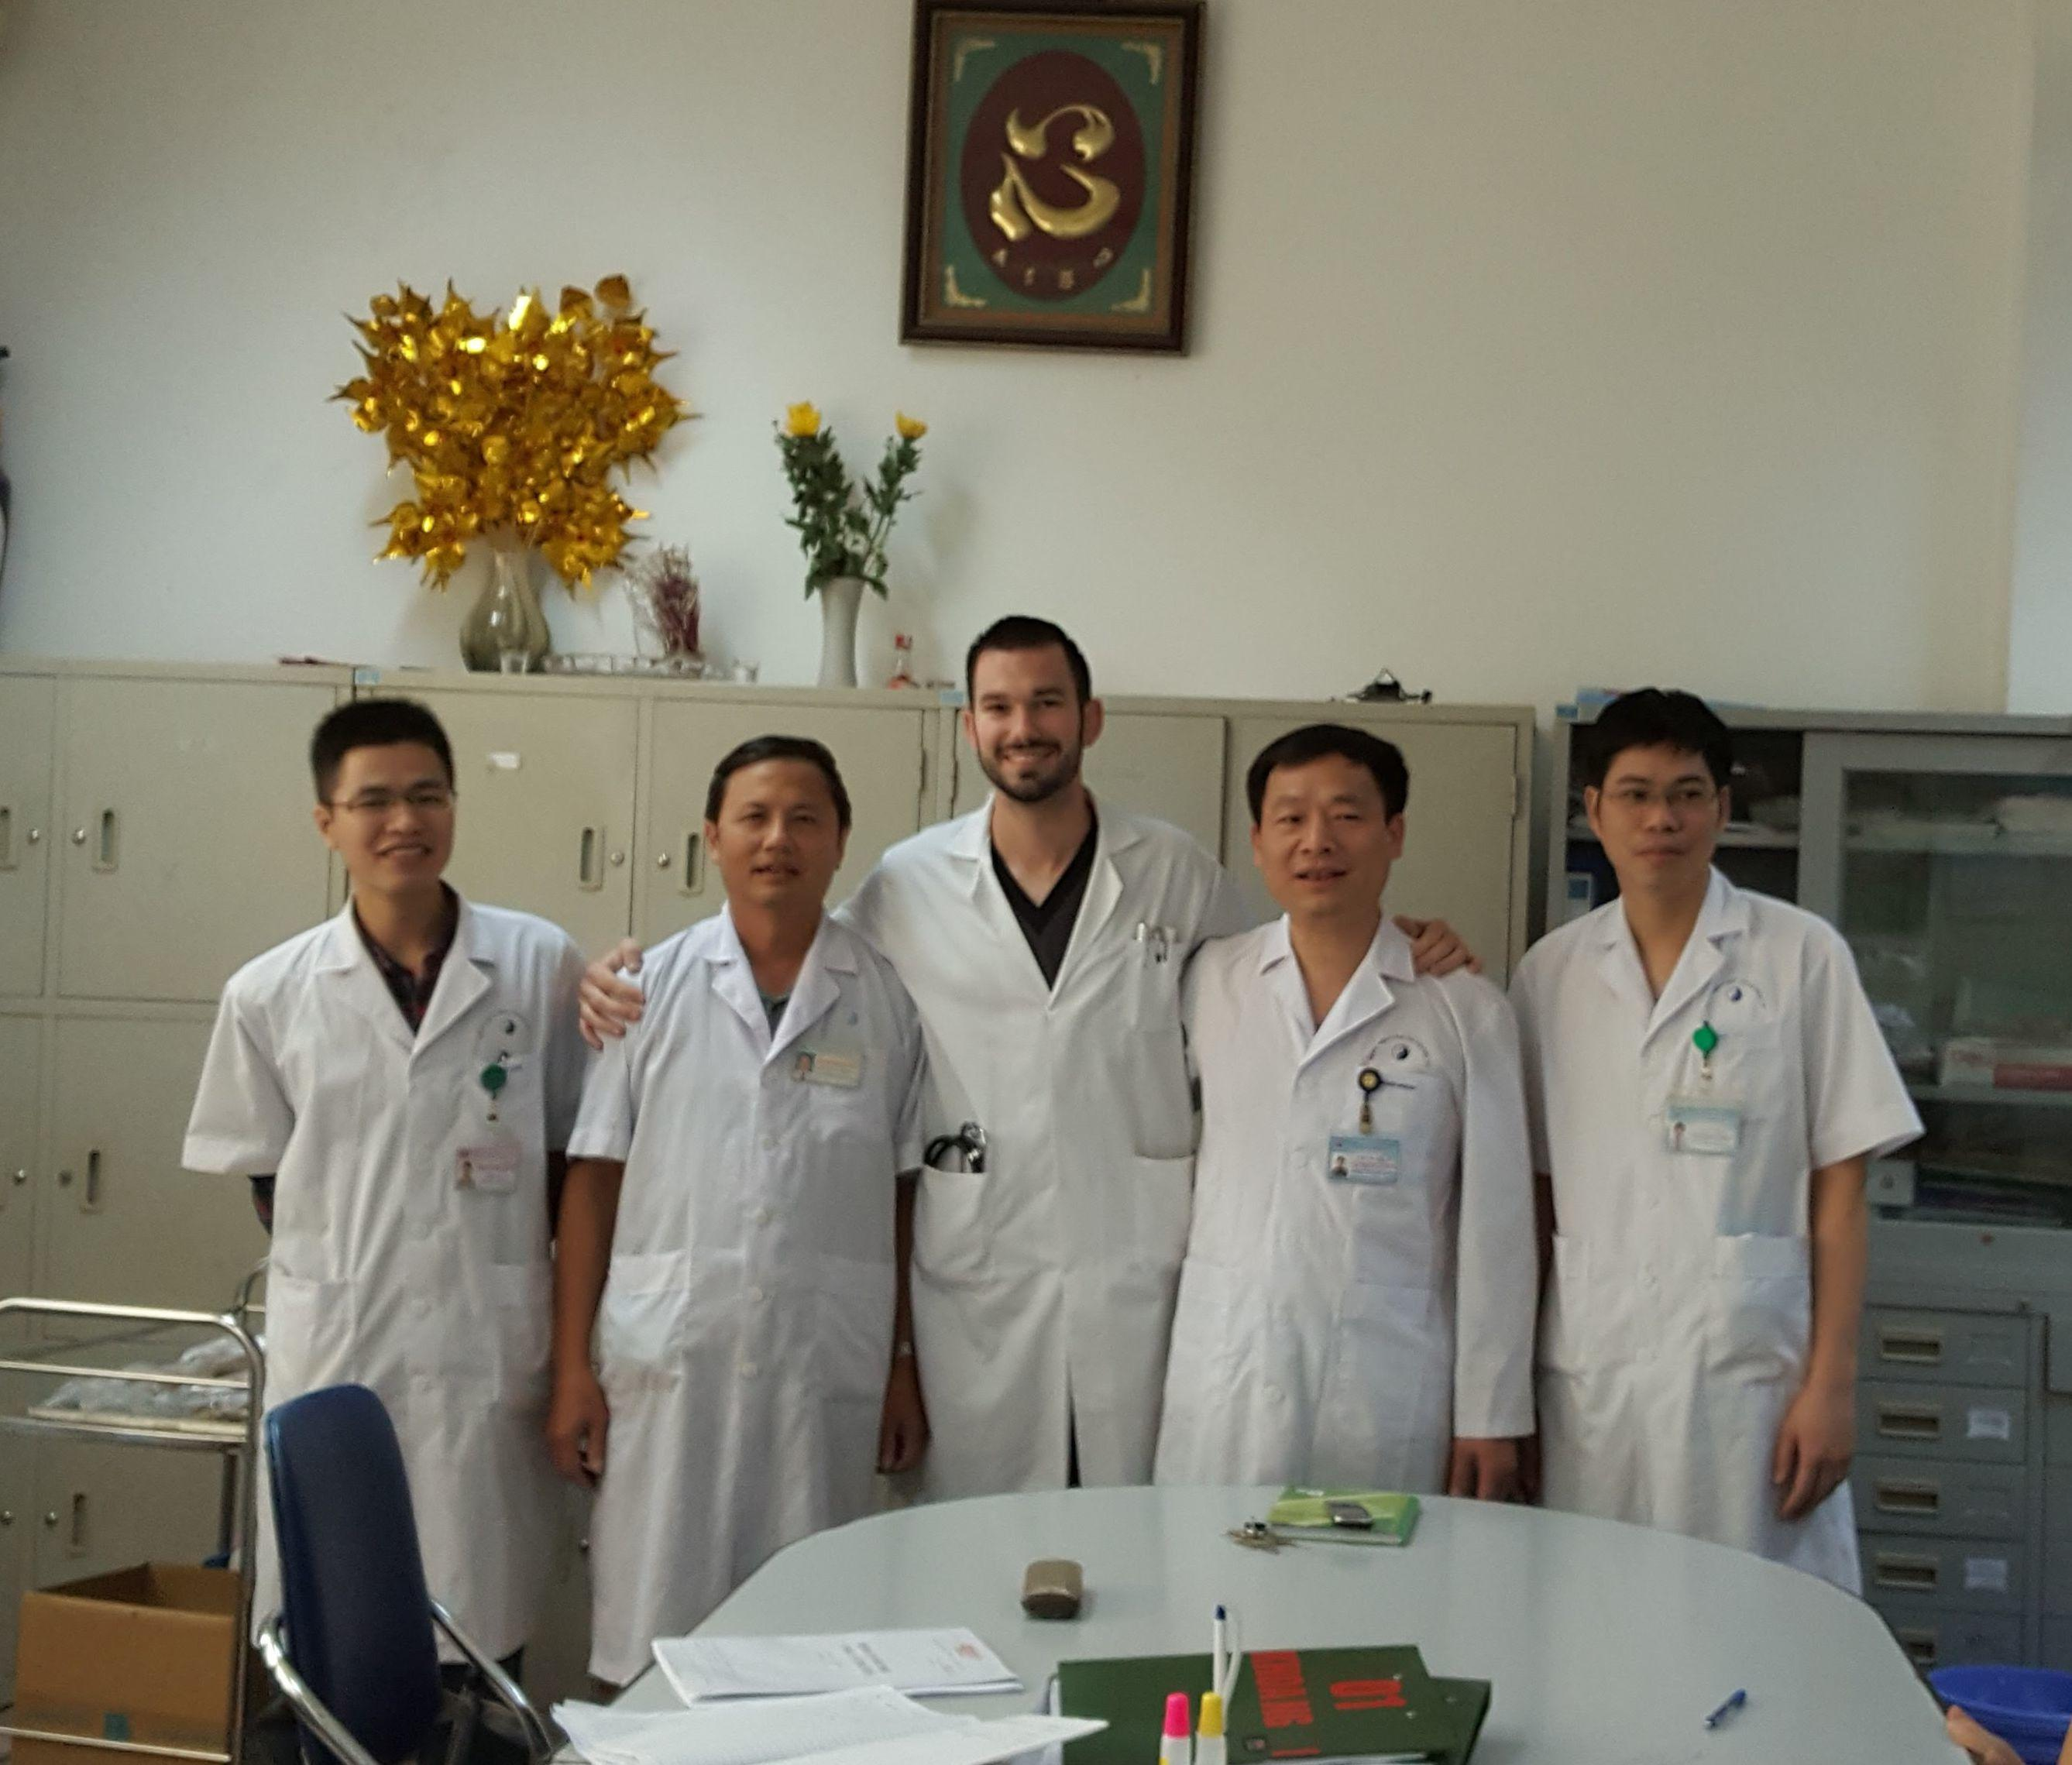 Local staff with a Projects Abroad intern at the end of his medical placement in Vietnam.